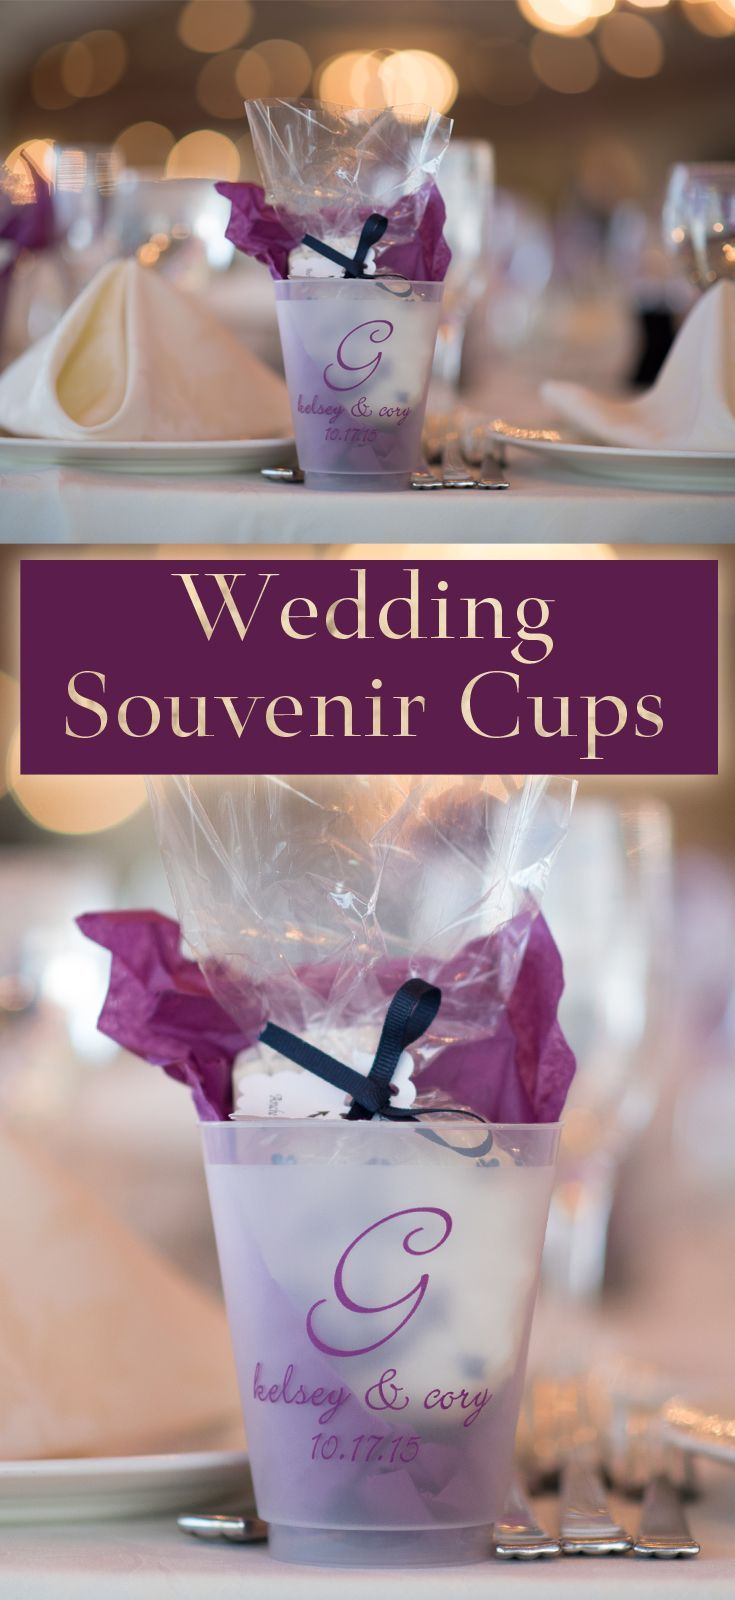 Plastic cups personalized with a design, bride and groom's name and wedding date or custom message make wonderful wedding souvenirs for guests to take home after your reception. Use cups for drinks or place small favors or treats like homemade cookies or chocolates wrapped in cellophane inside each cup and set at each guest table setting. These cups can be ordered at